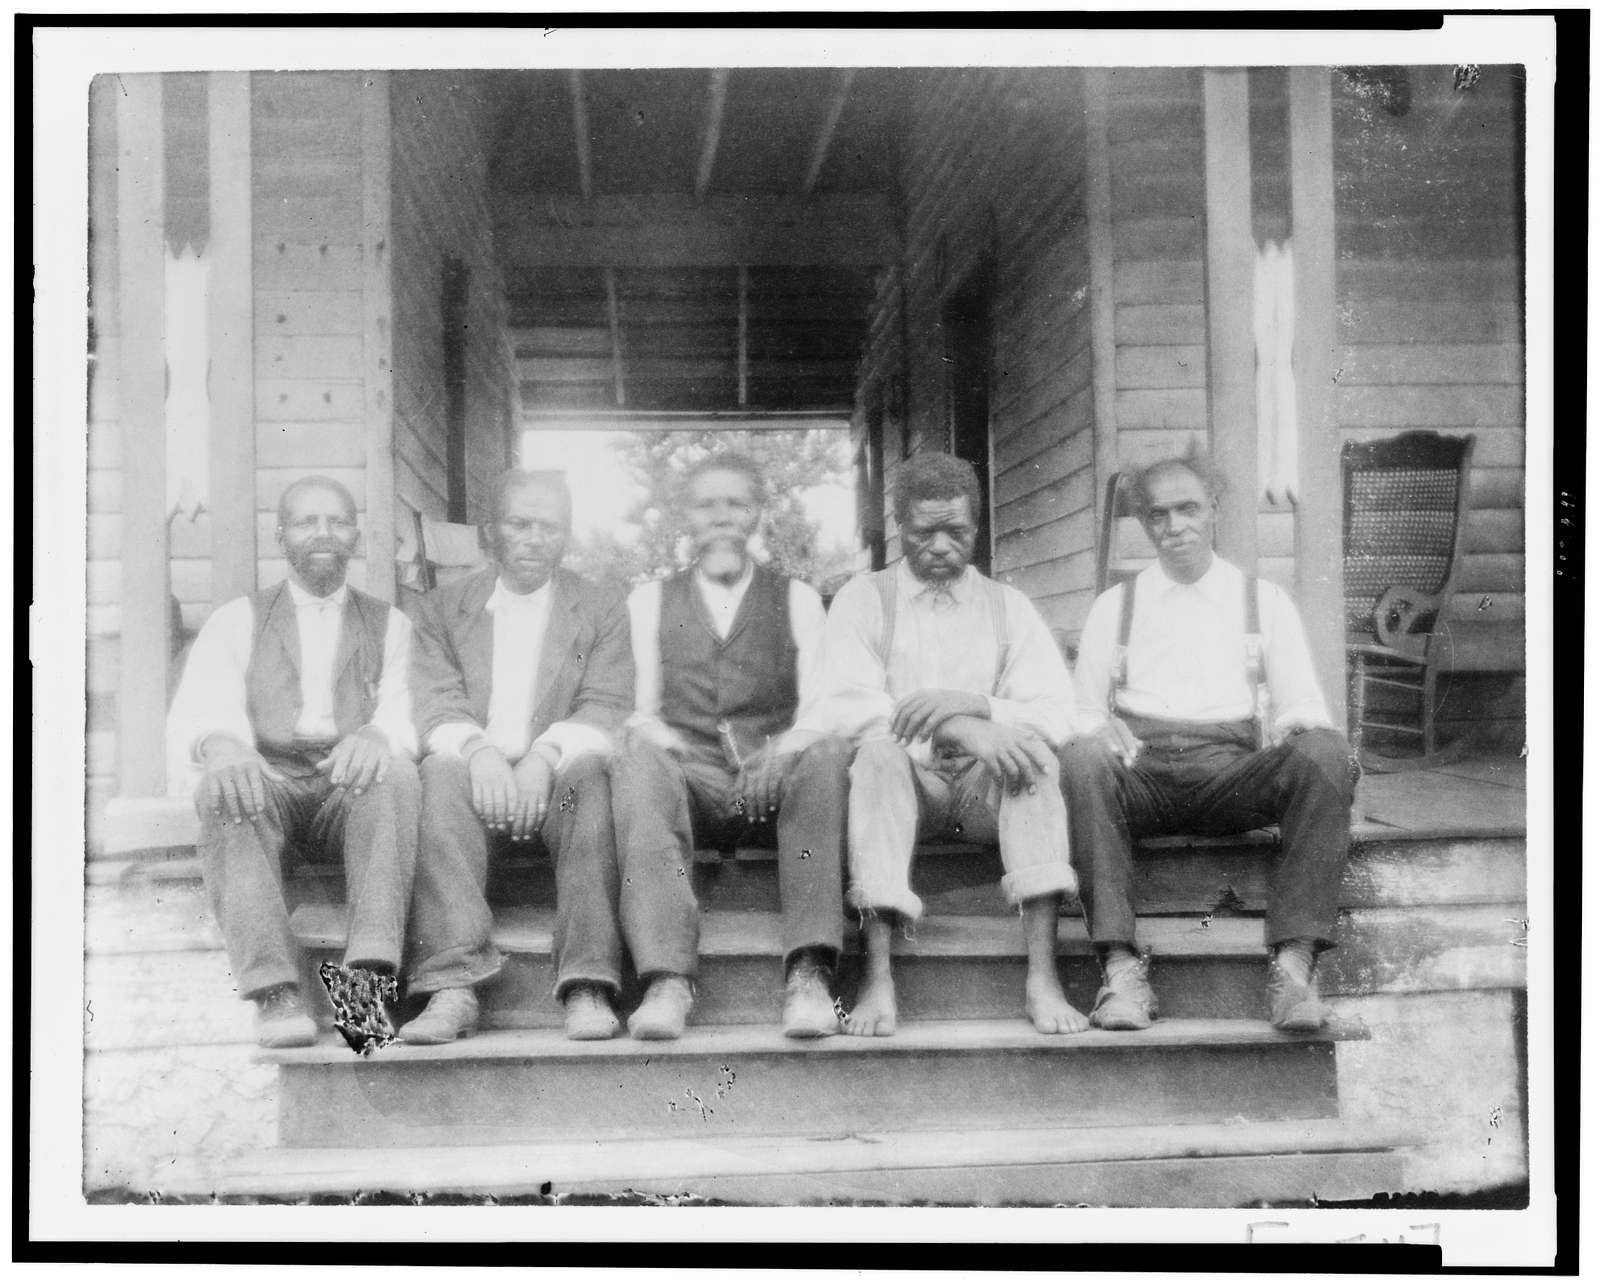 [African American men seated on porch steps]